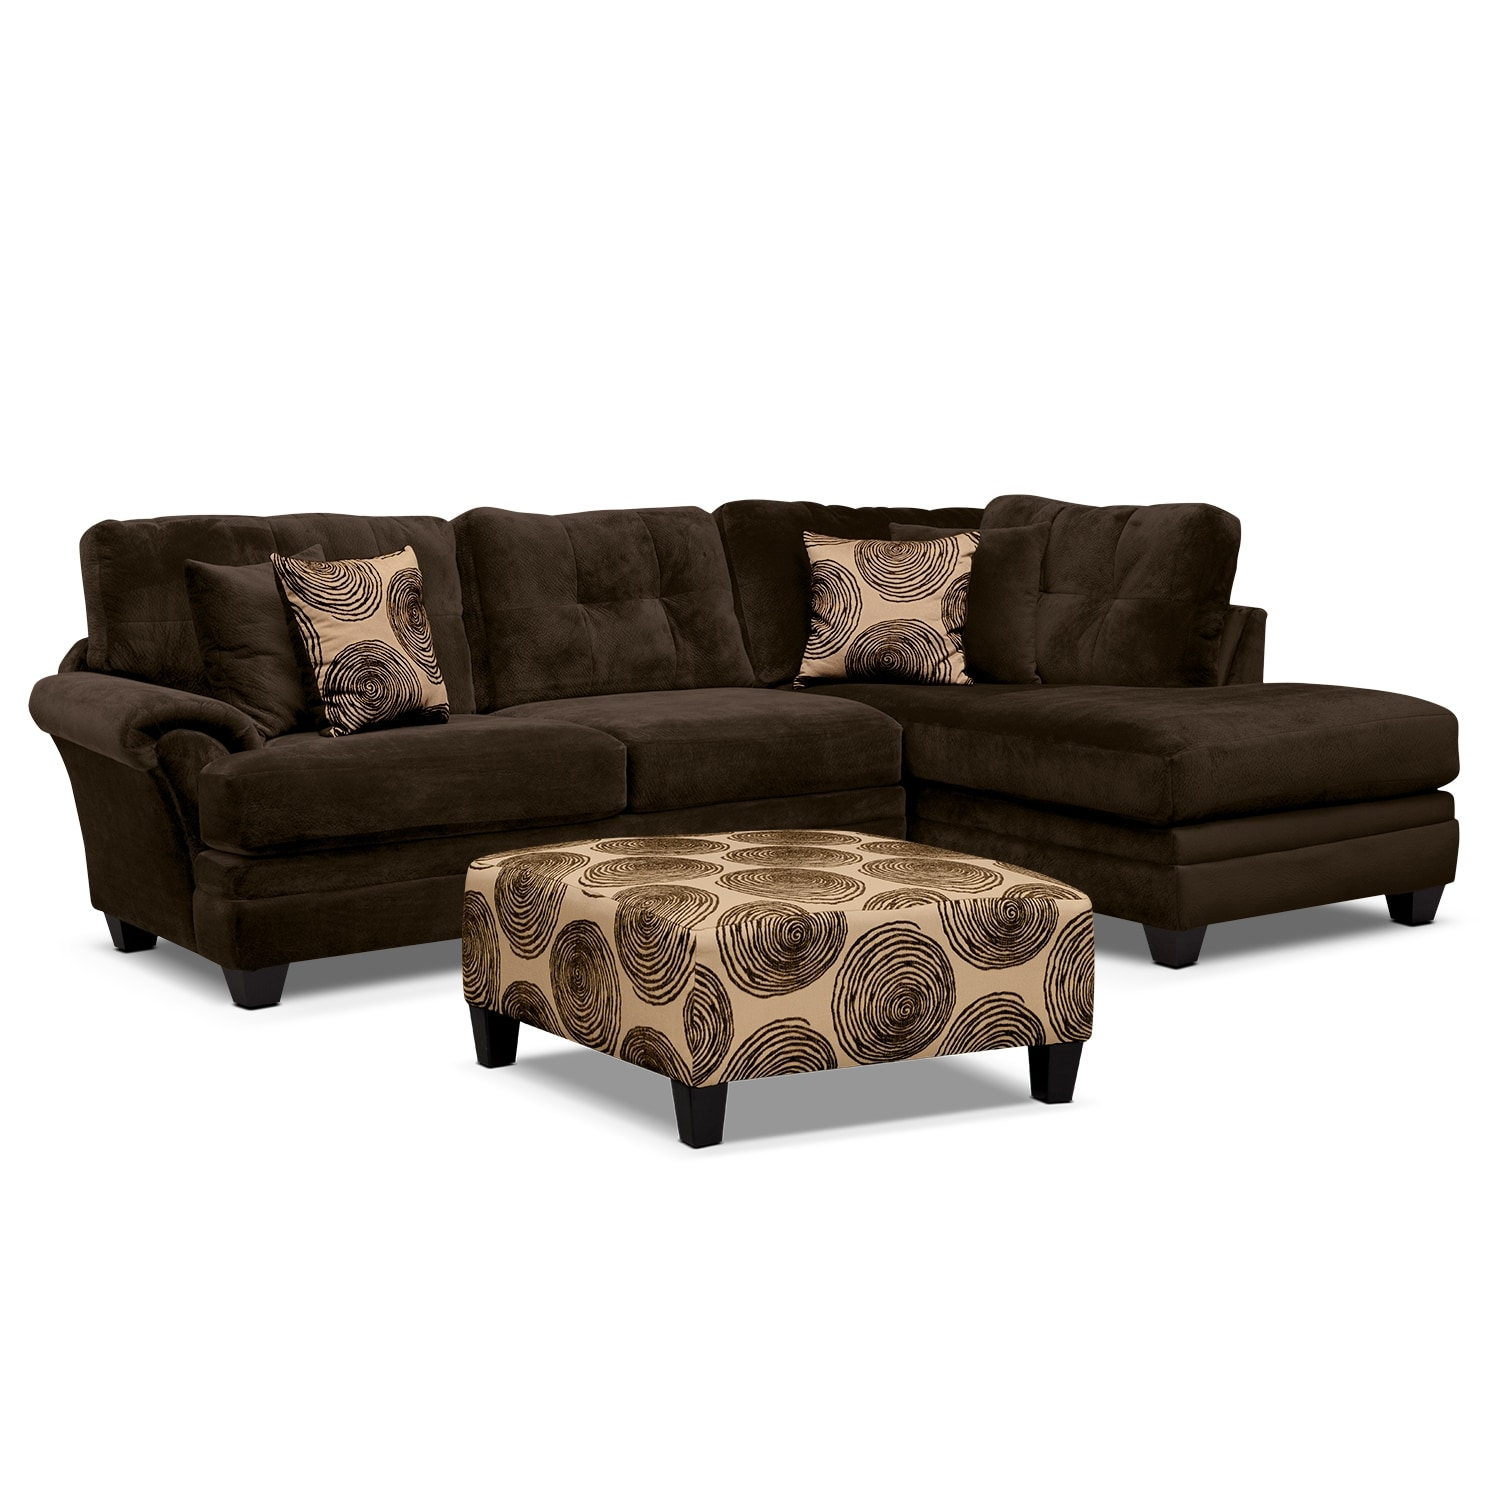 [Cordoba 2-Piece Right-Facing Sectional Plus Free Cocktail Ottoman - Chocolate]